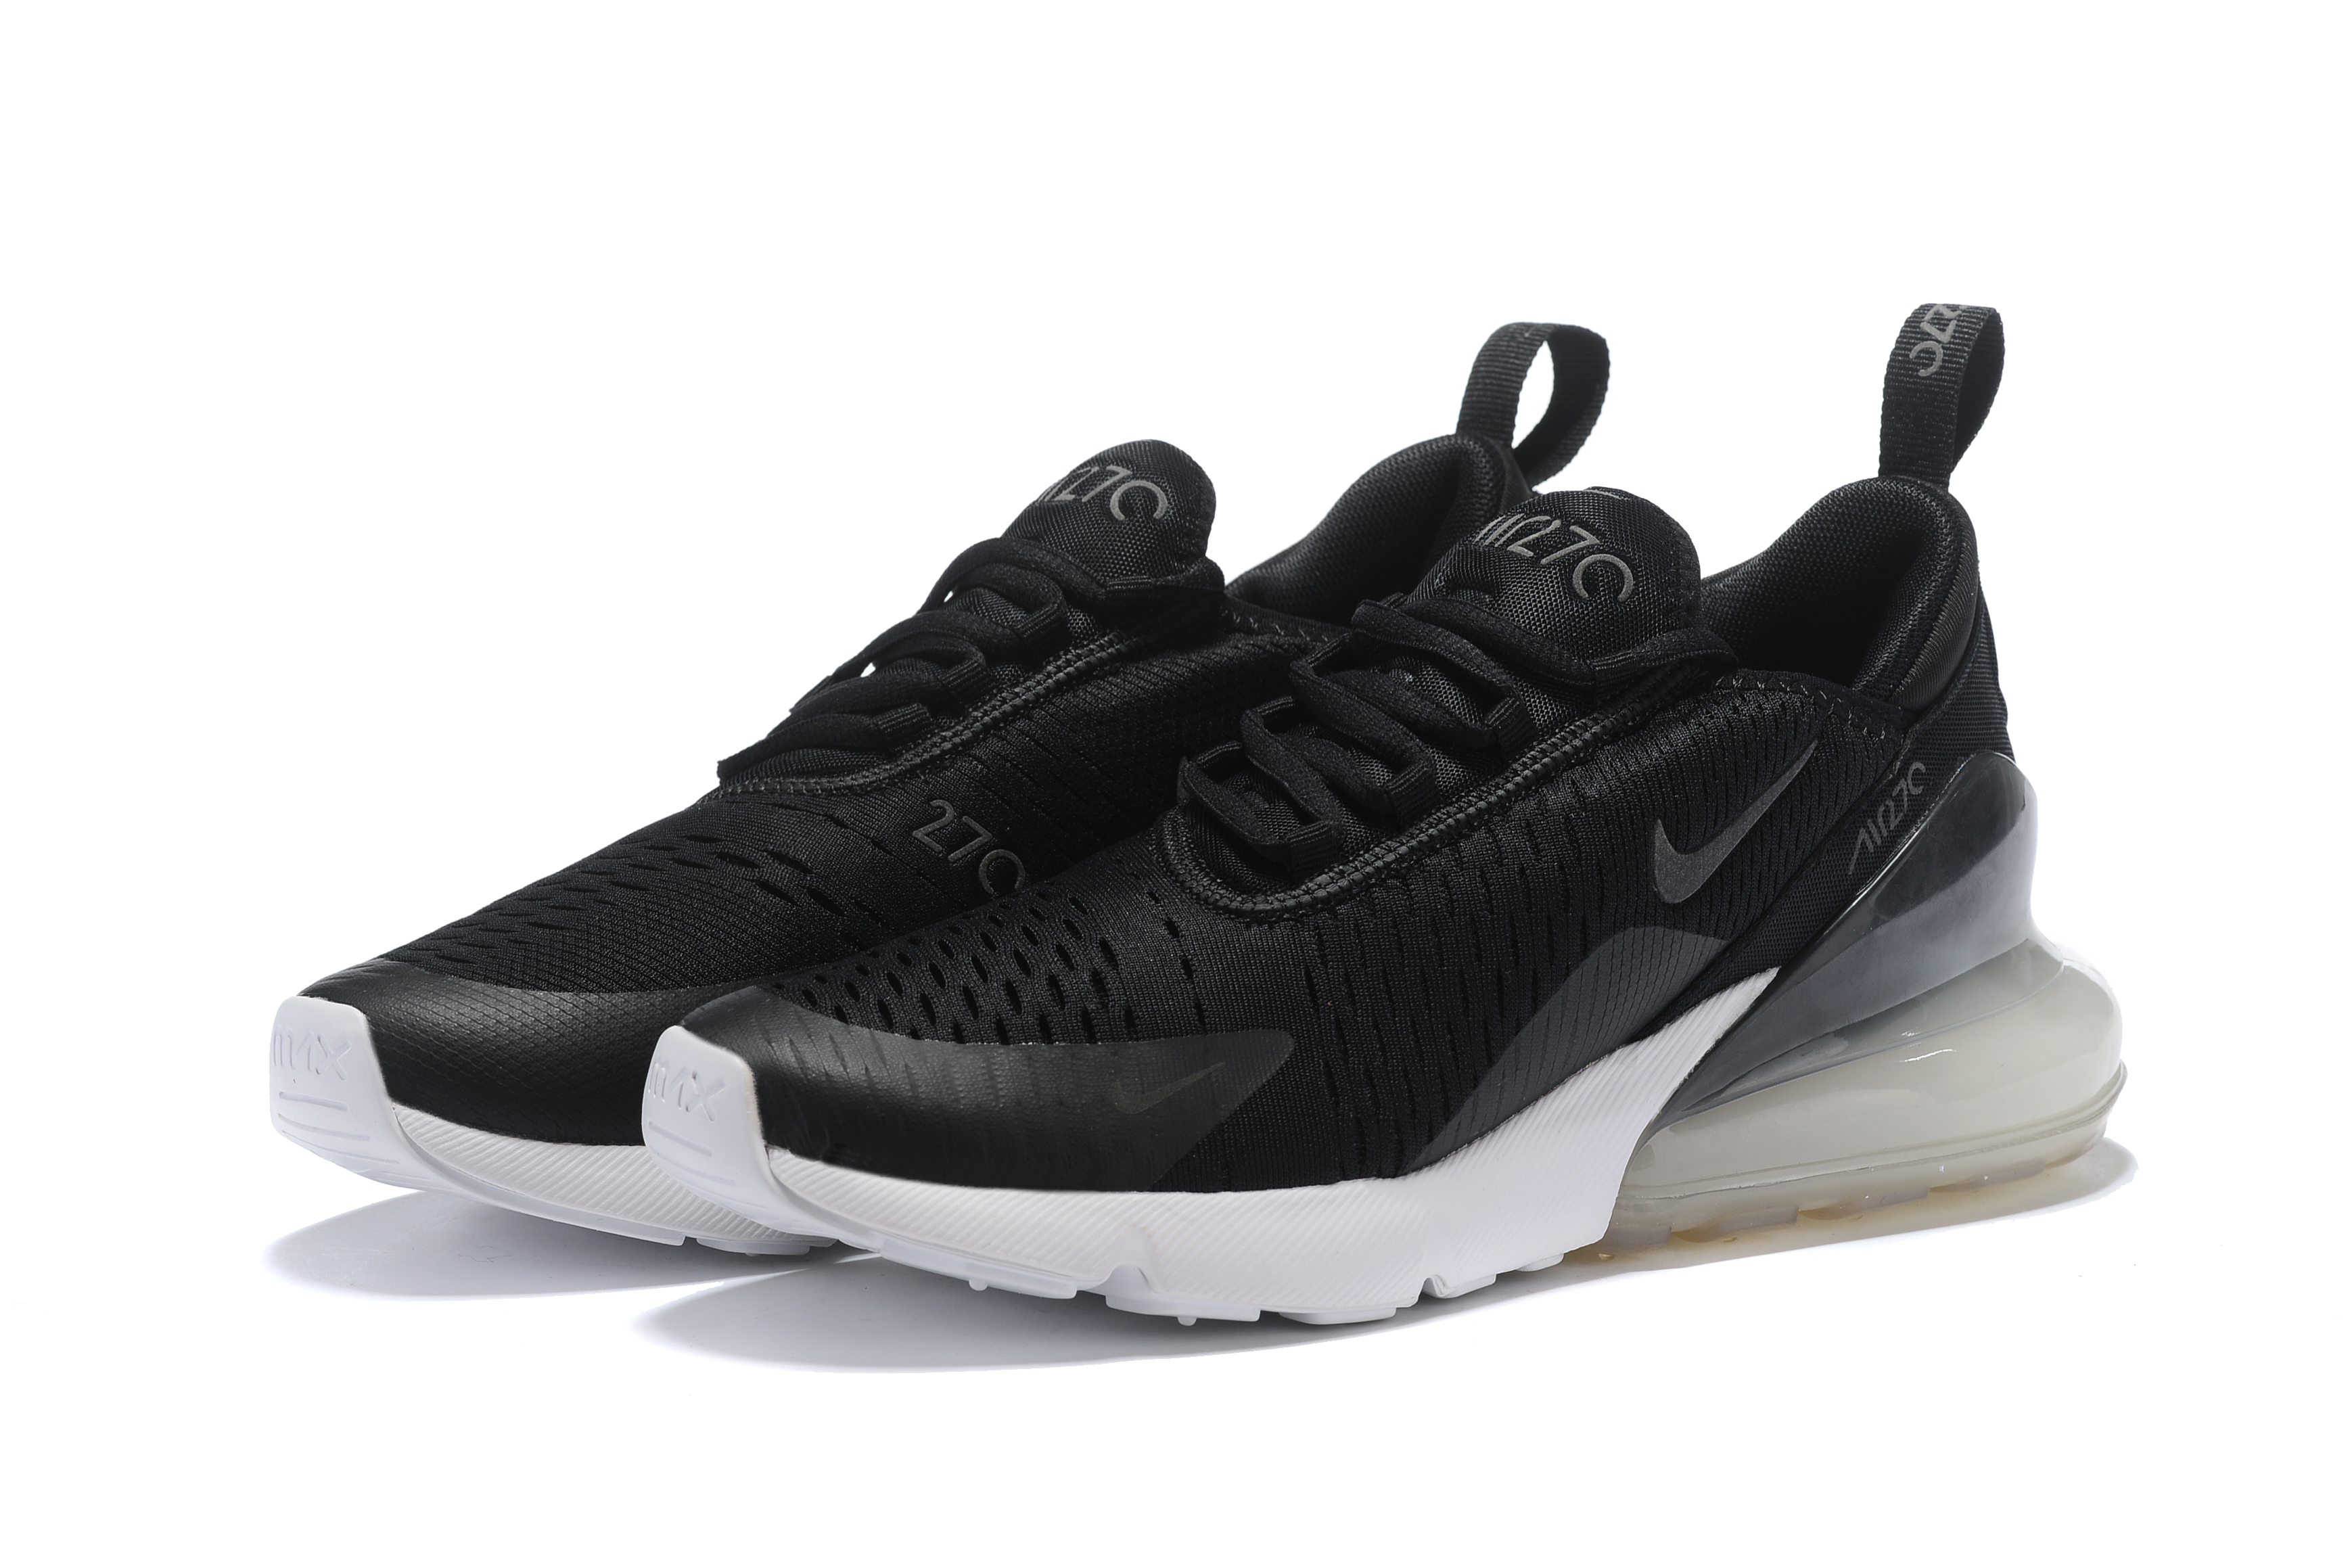 2018 Women Nike Air Max 270 Midnight Black White Running Shoes